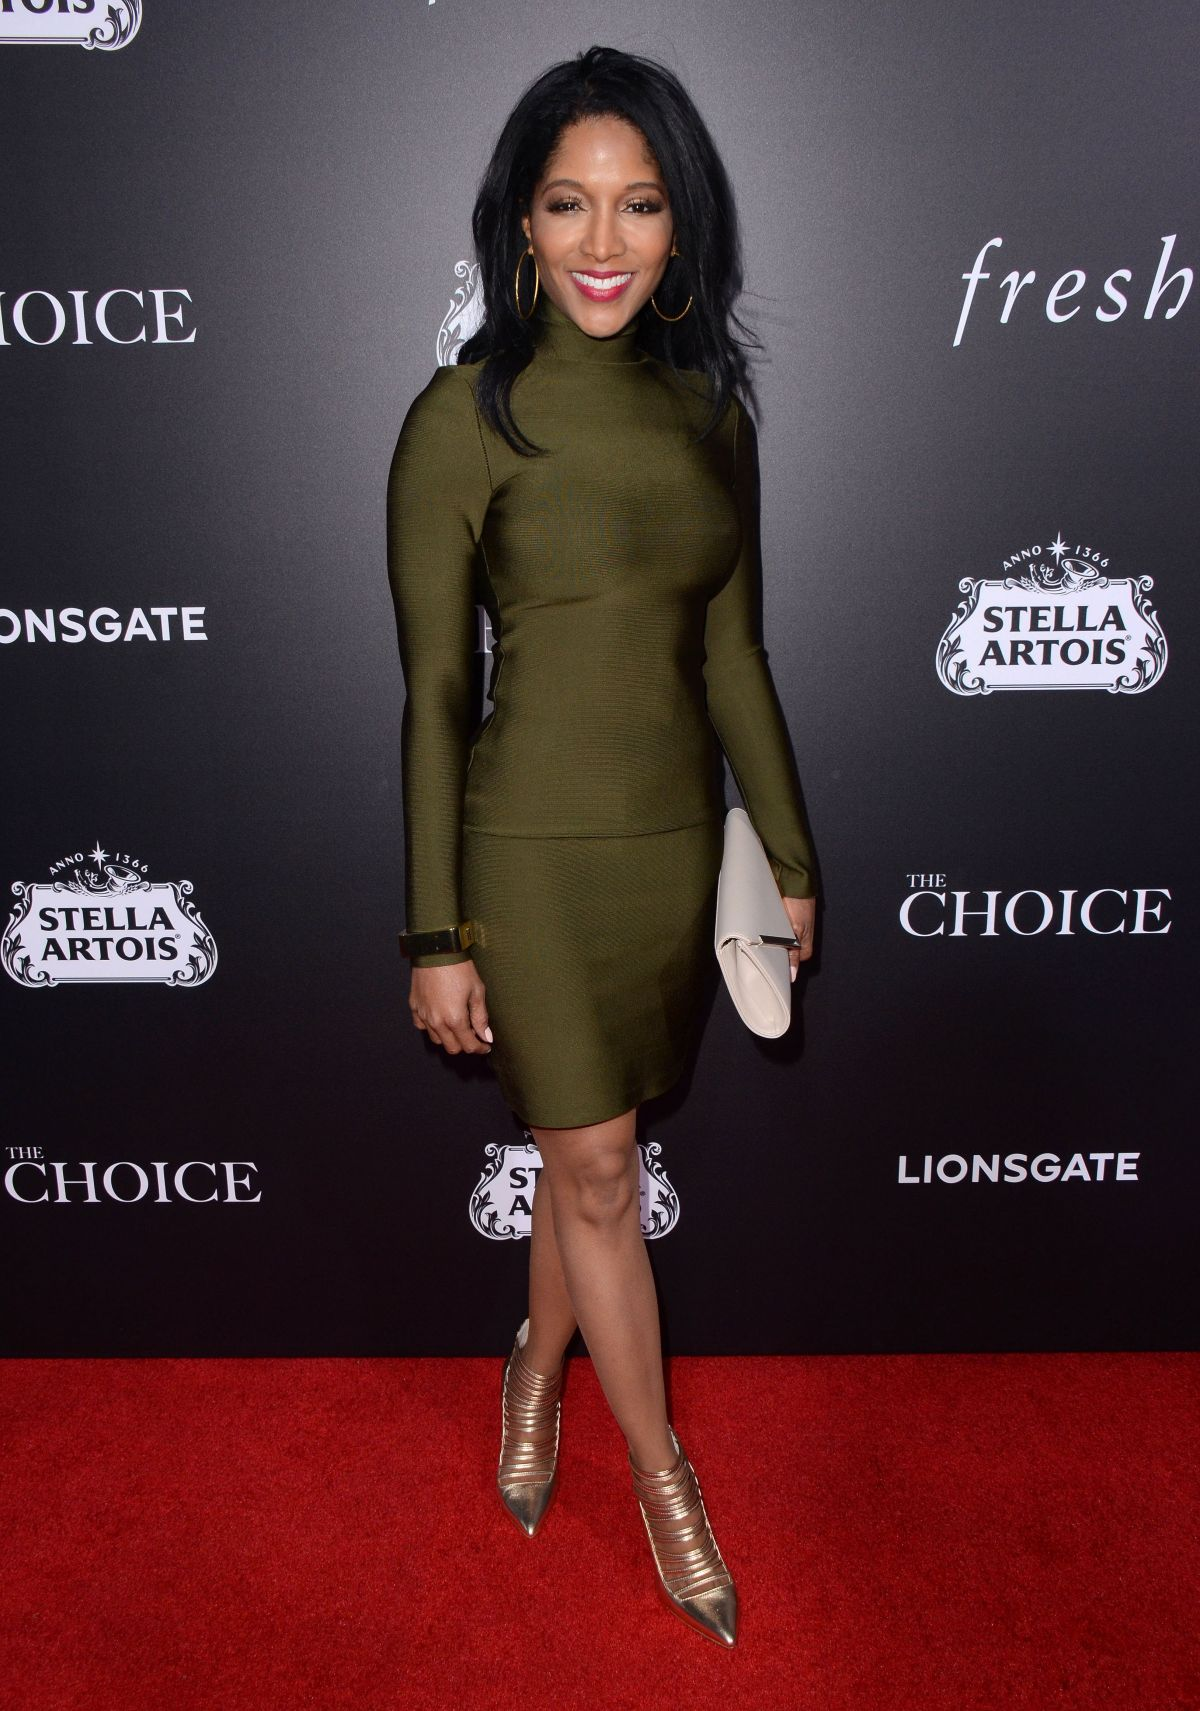 NOREE VICTORIA at The Choice Premiere in Hollywood 02/01/2016